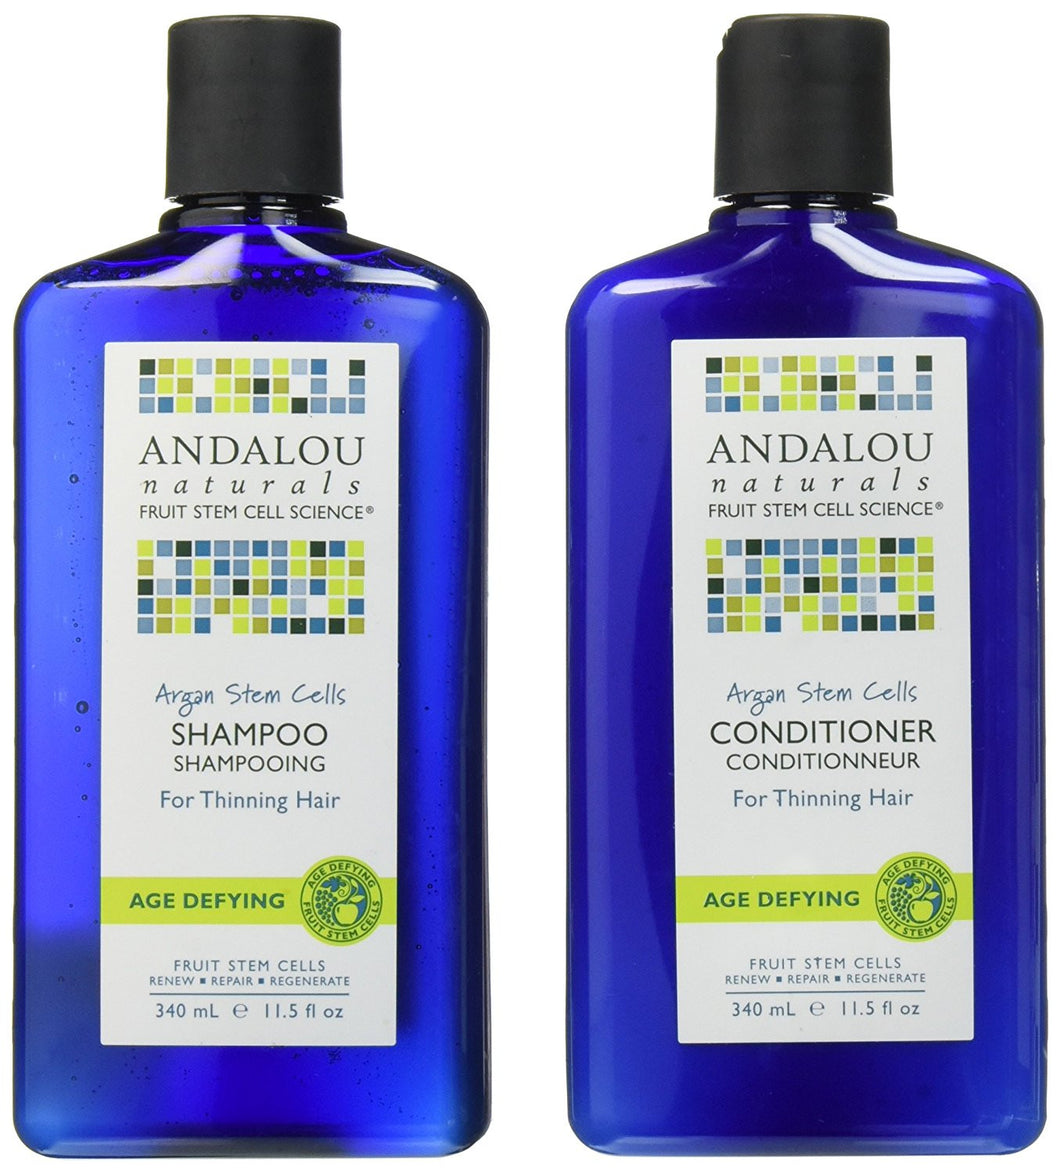 Andalou Naturals Argan Oil Stem Cells Shampoo & Conditioner Bundle, 11.5 fl. oz. each